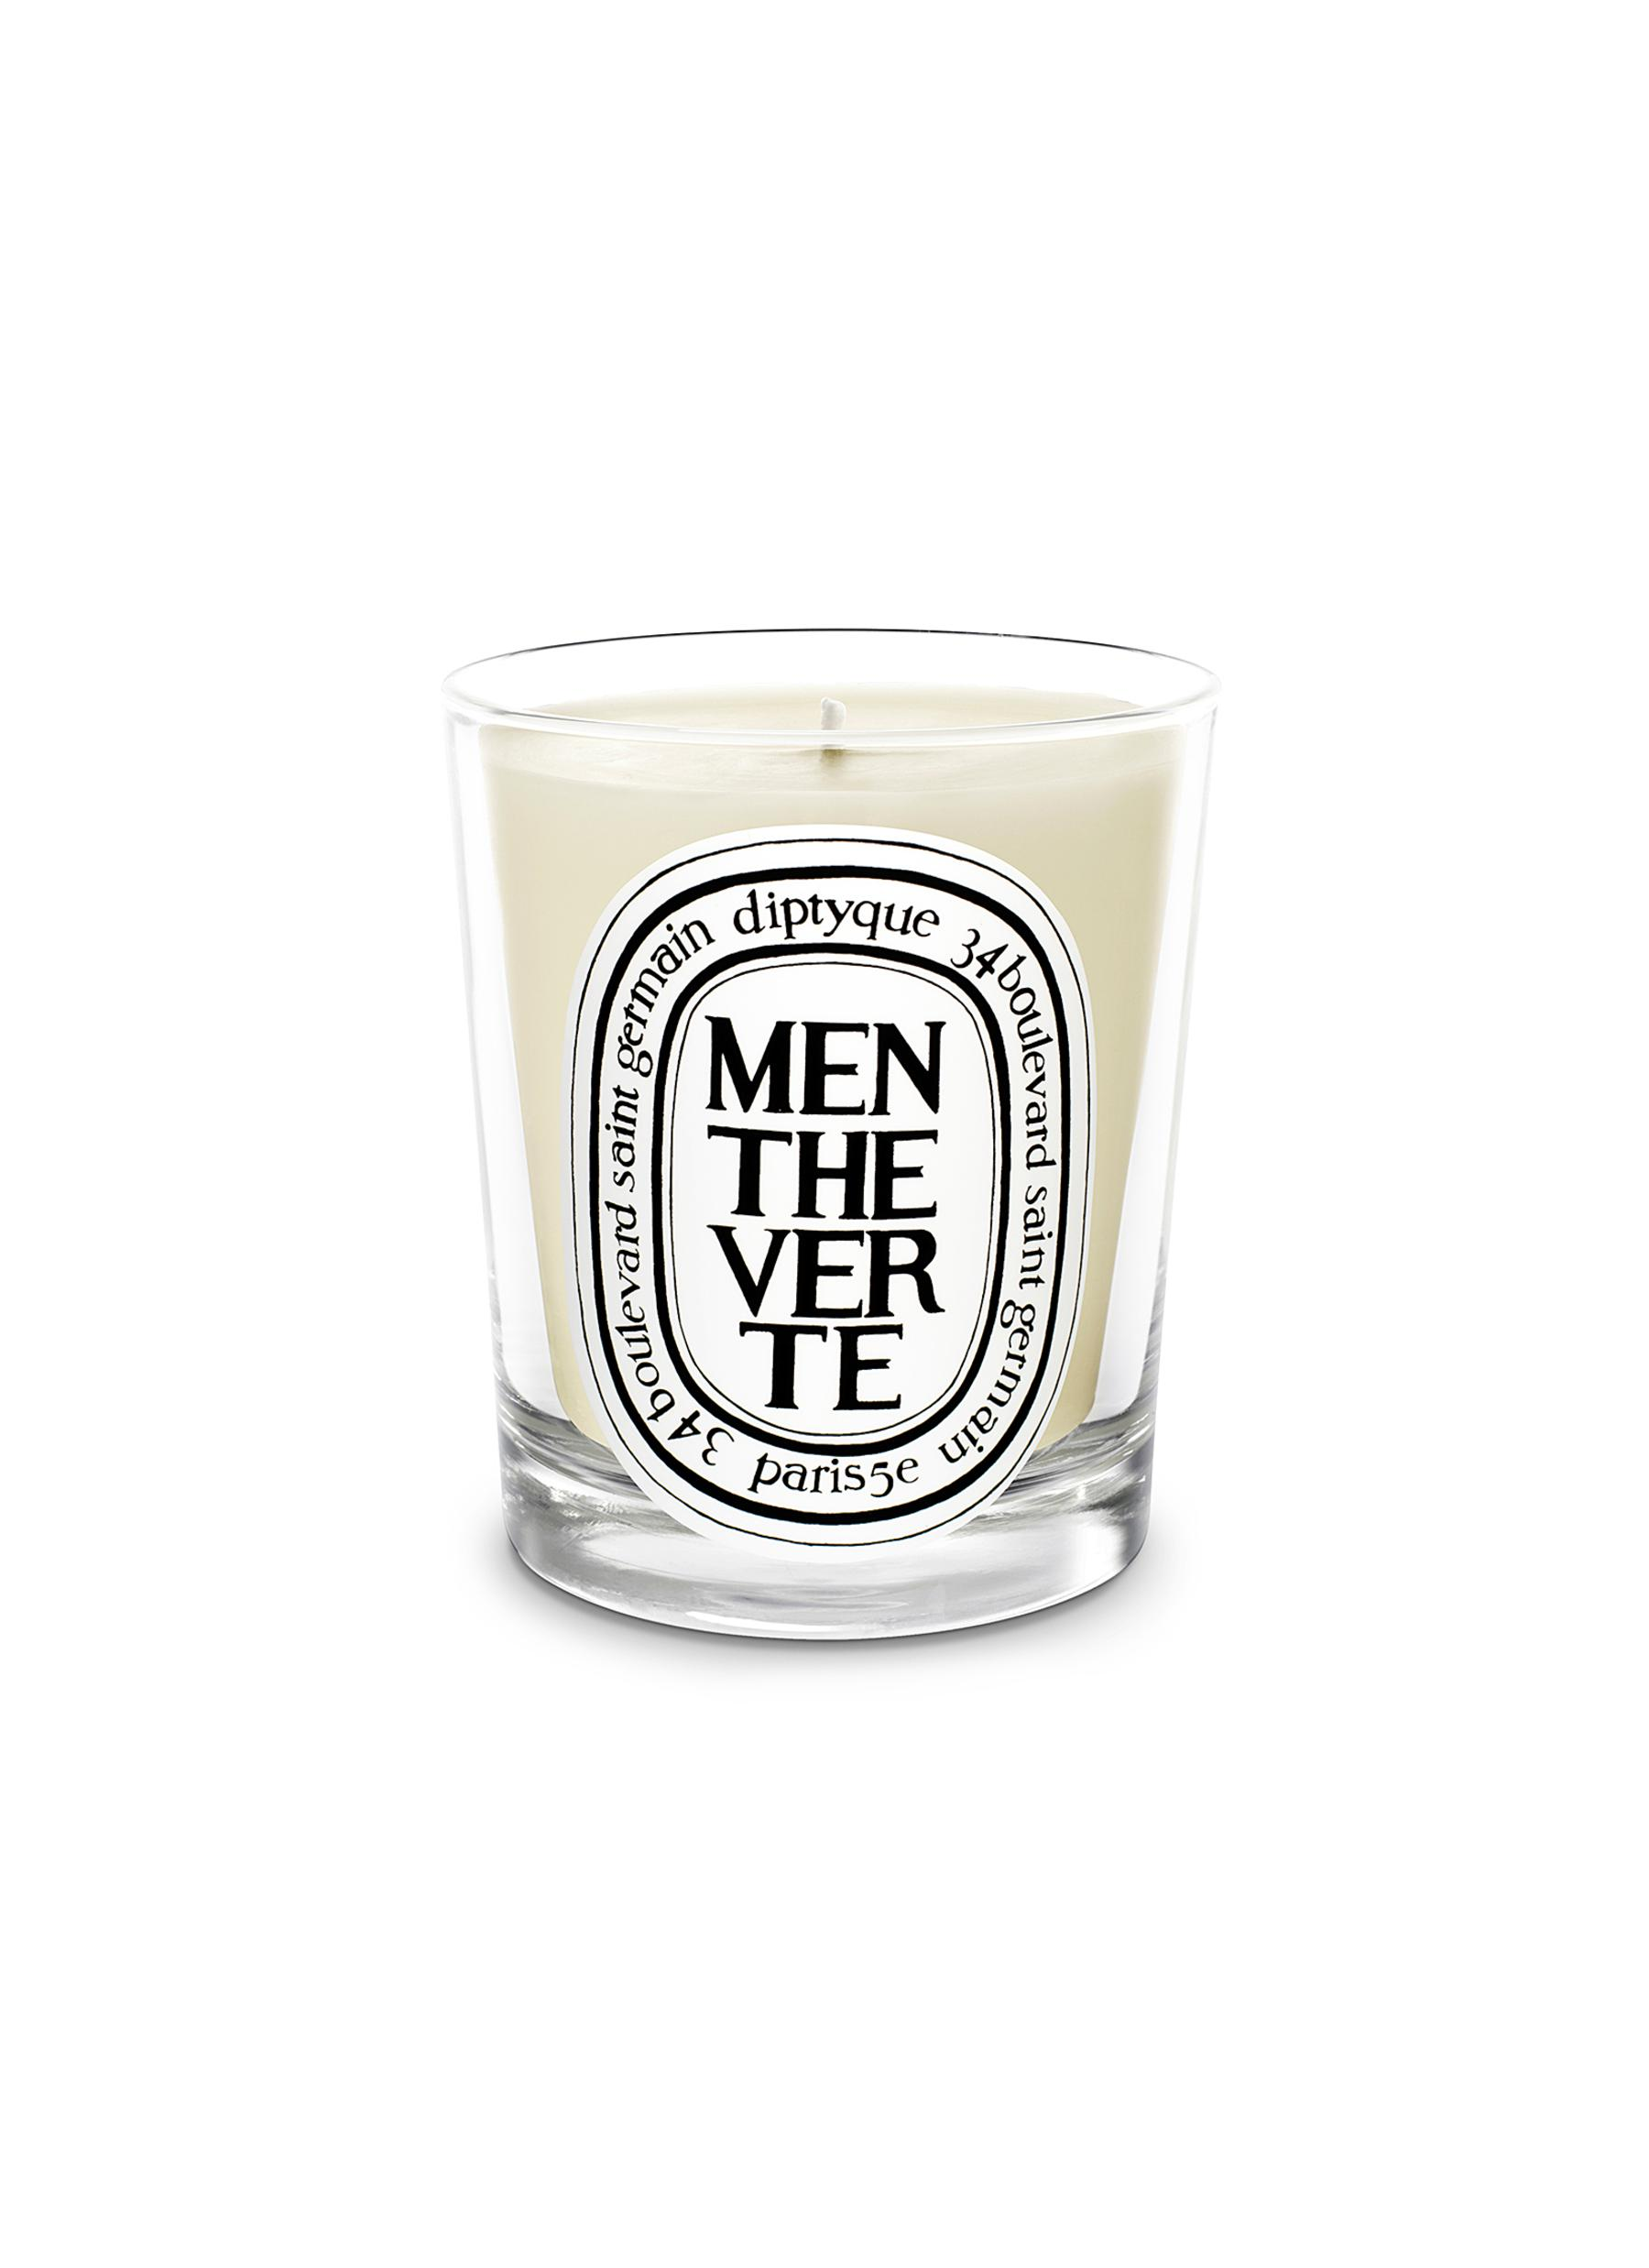 Menthe Verte Scented Candle 190g by diptyque